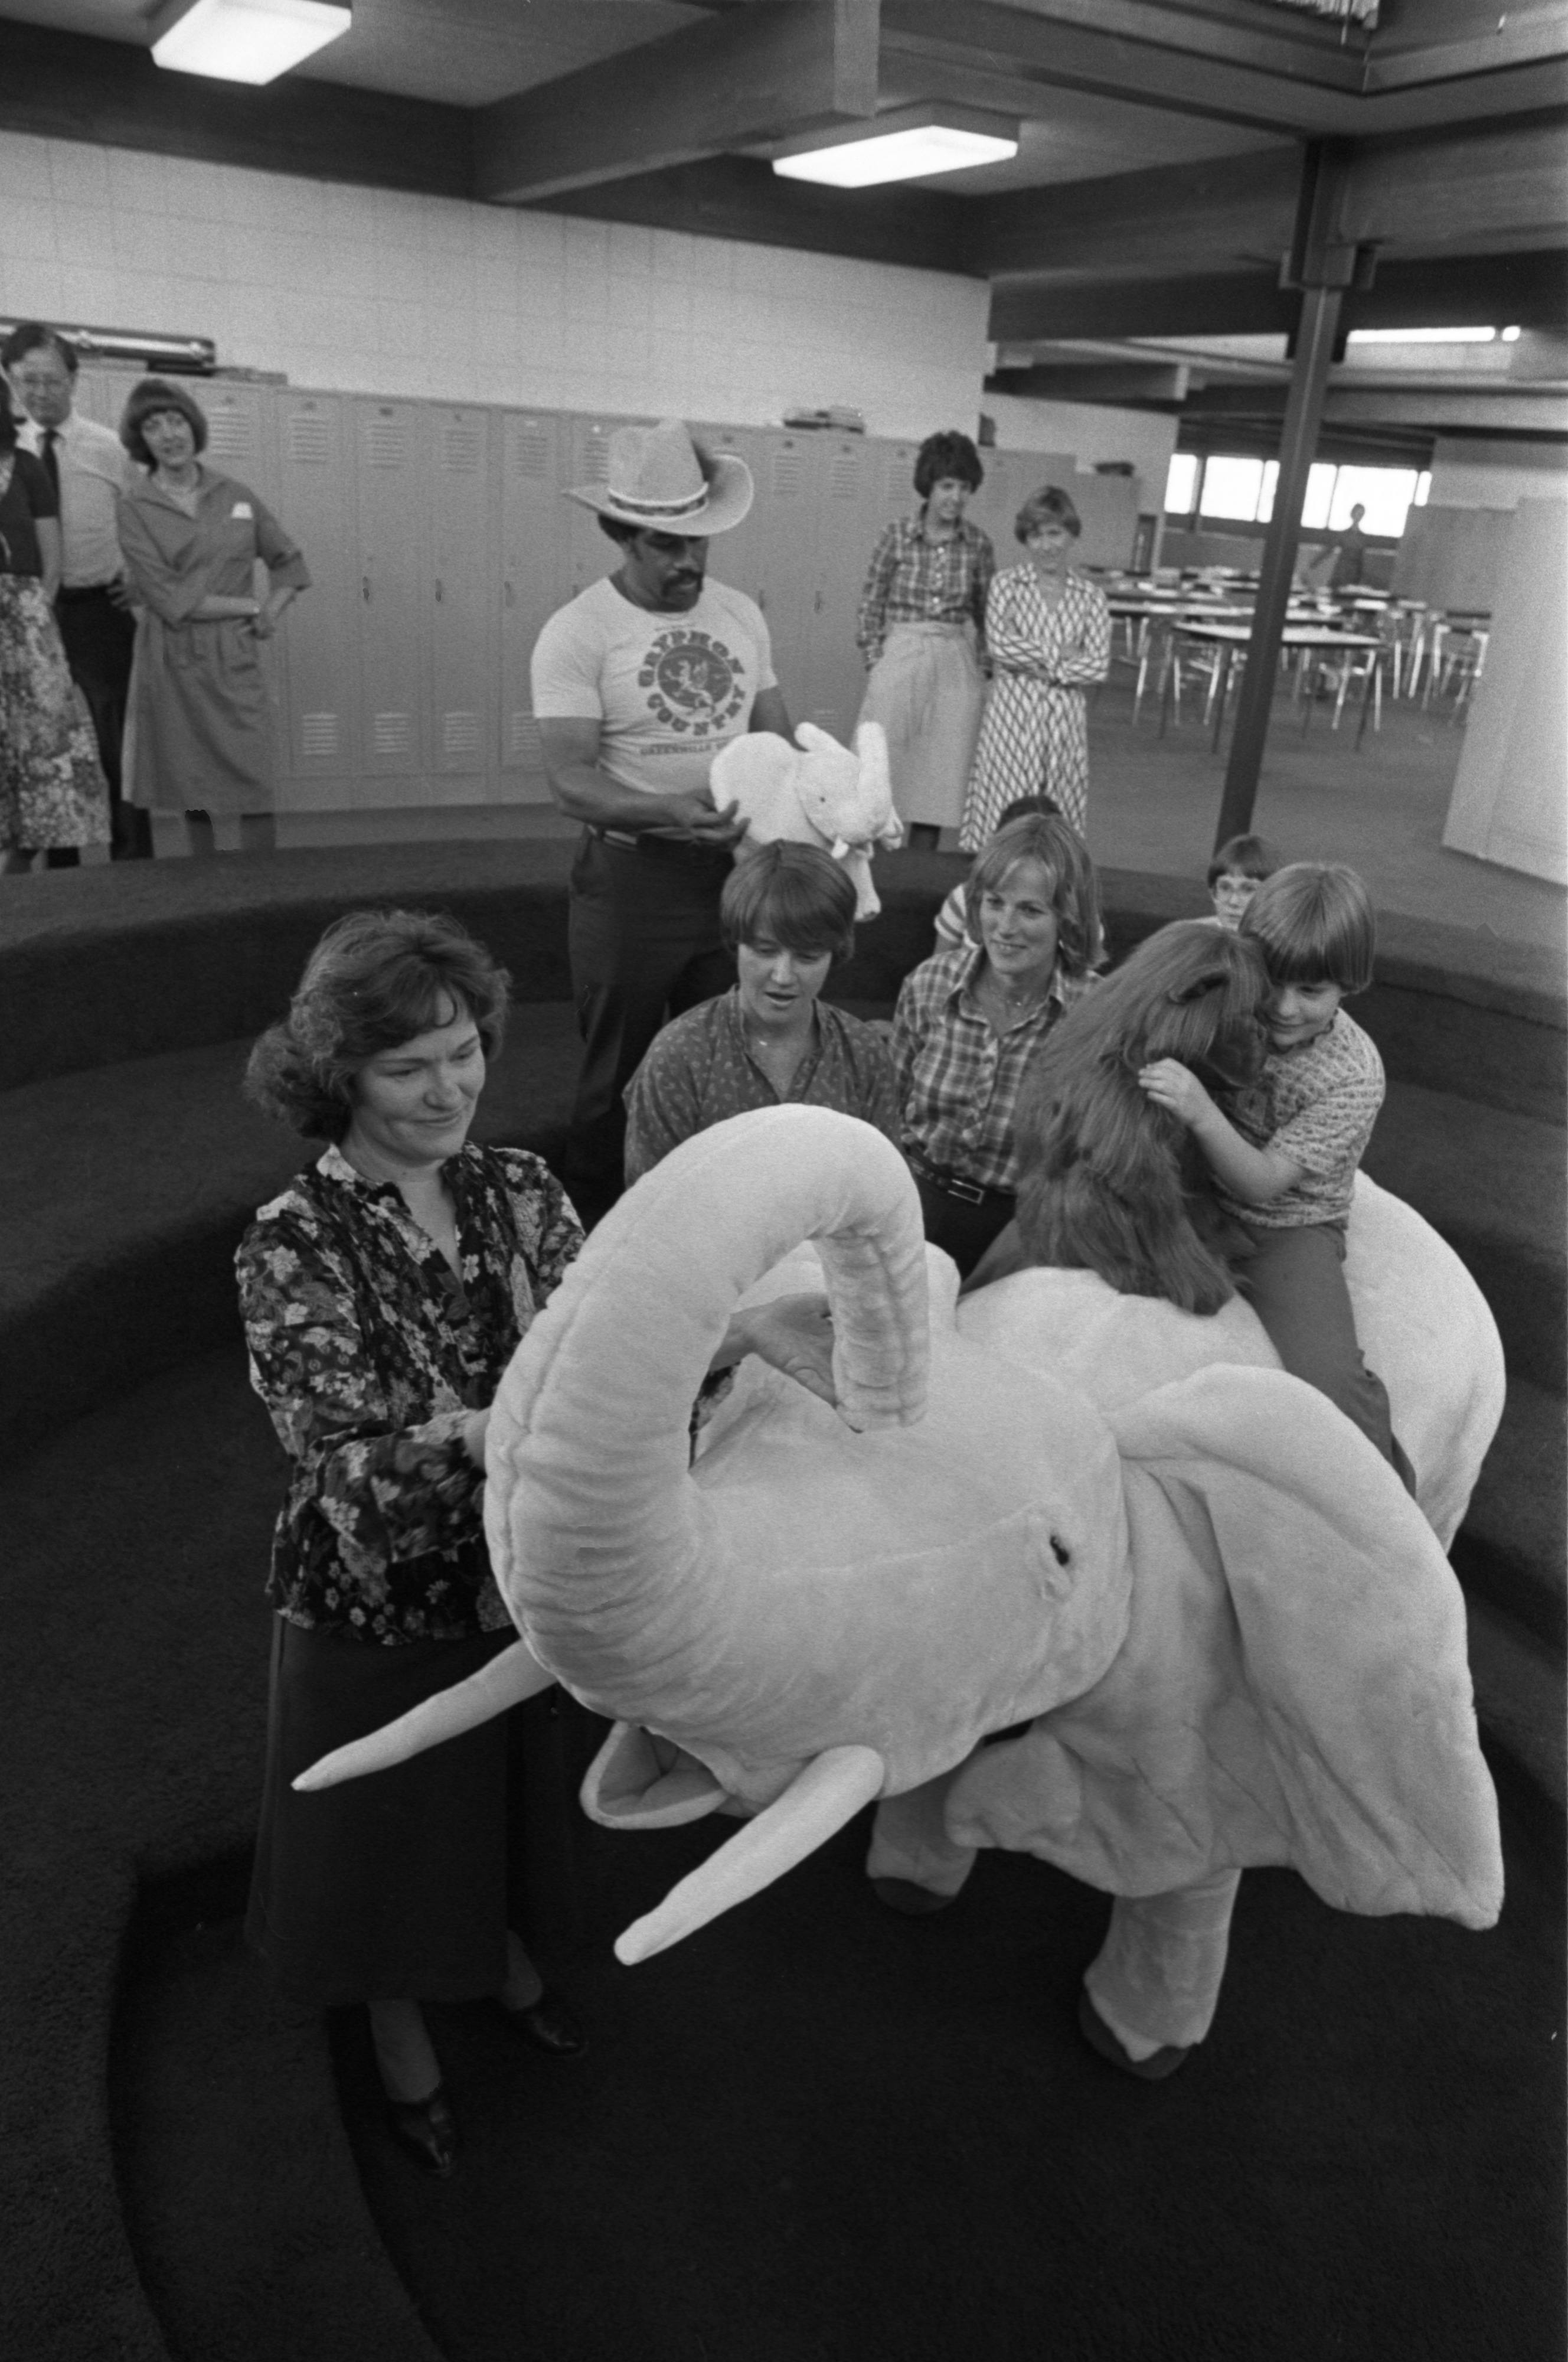 Ira Jensen Shows Others The Stuffed Elephant She Made For The Annual Spring Gala At Greenhills, May 9, 1979 image